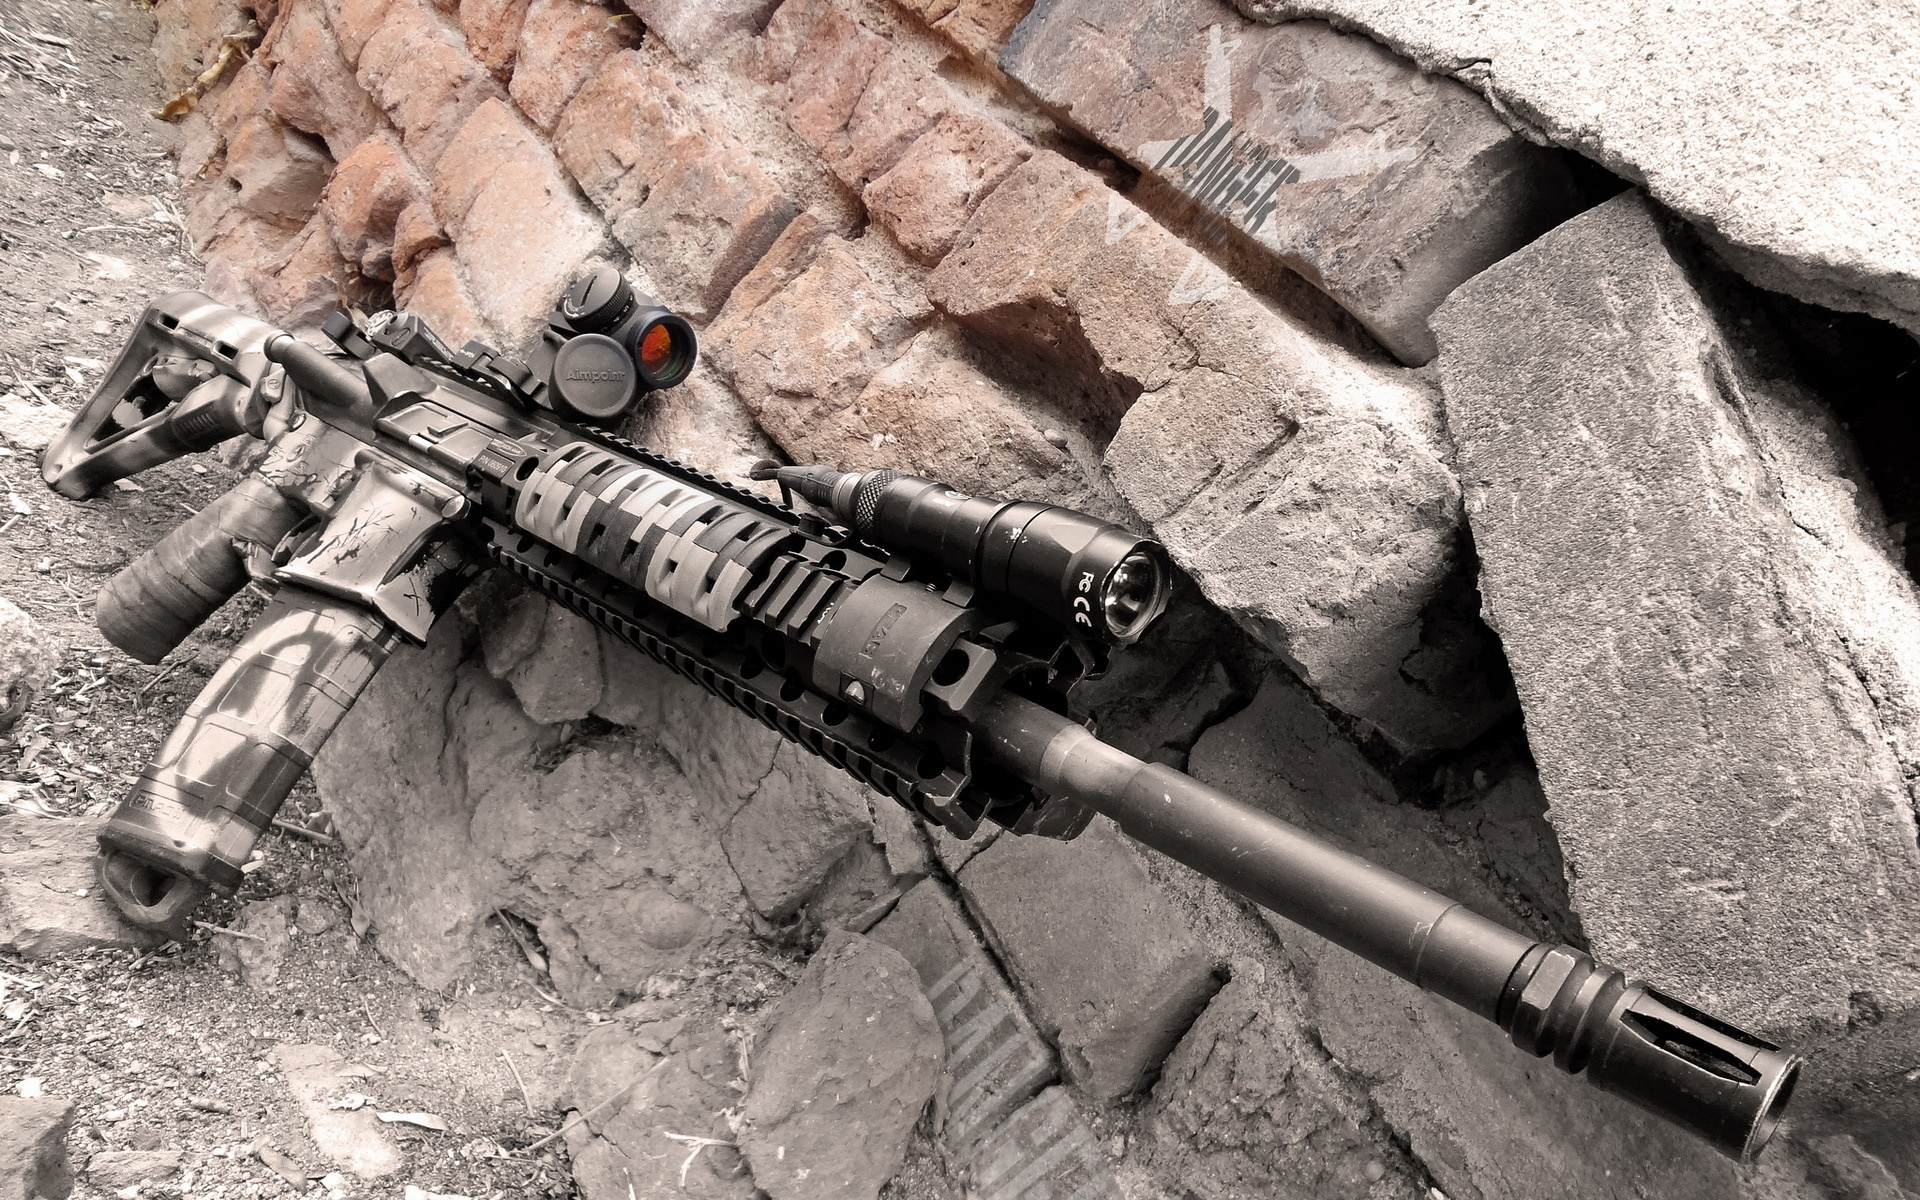 Colorado AR 15 military police weapon gun wallpaper 1920x1200 1920x1200